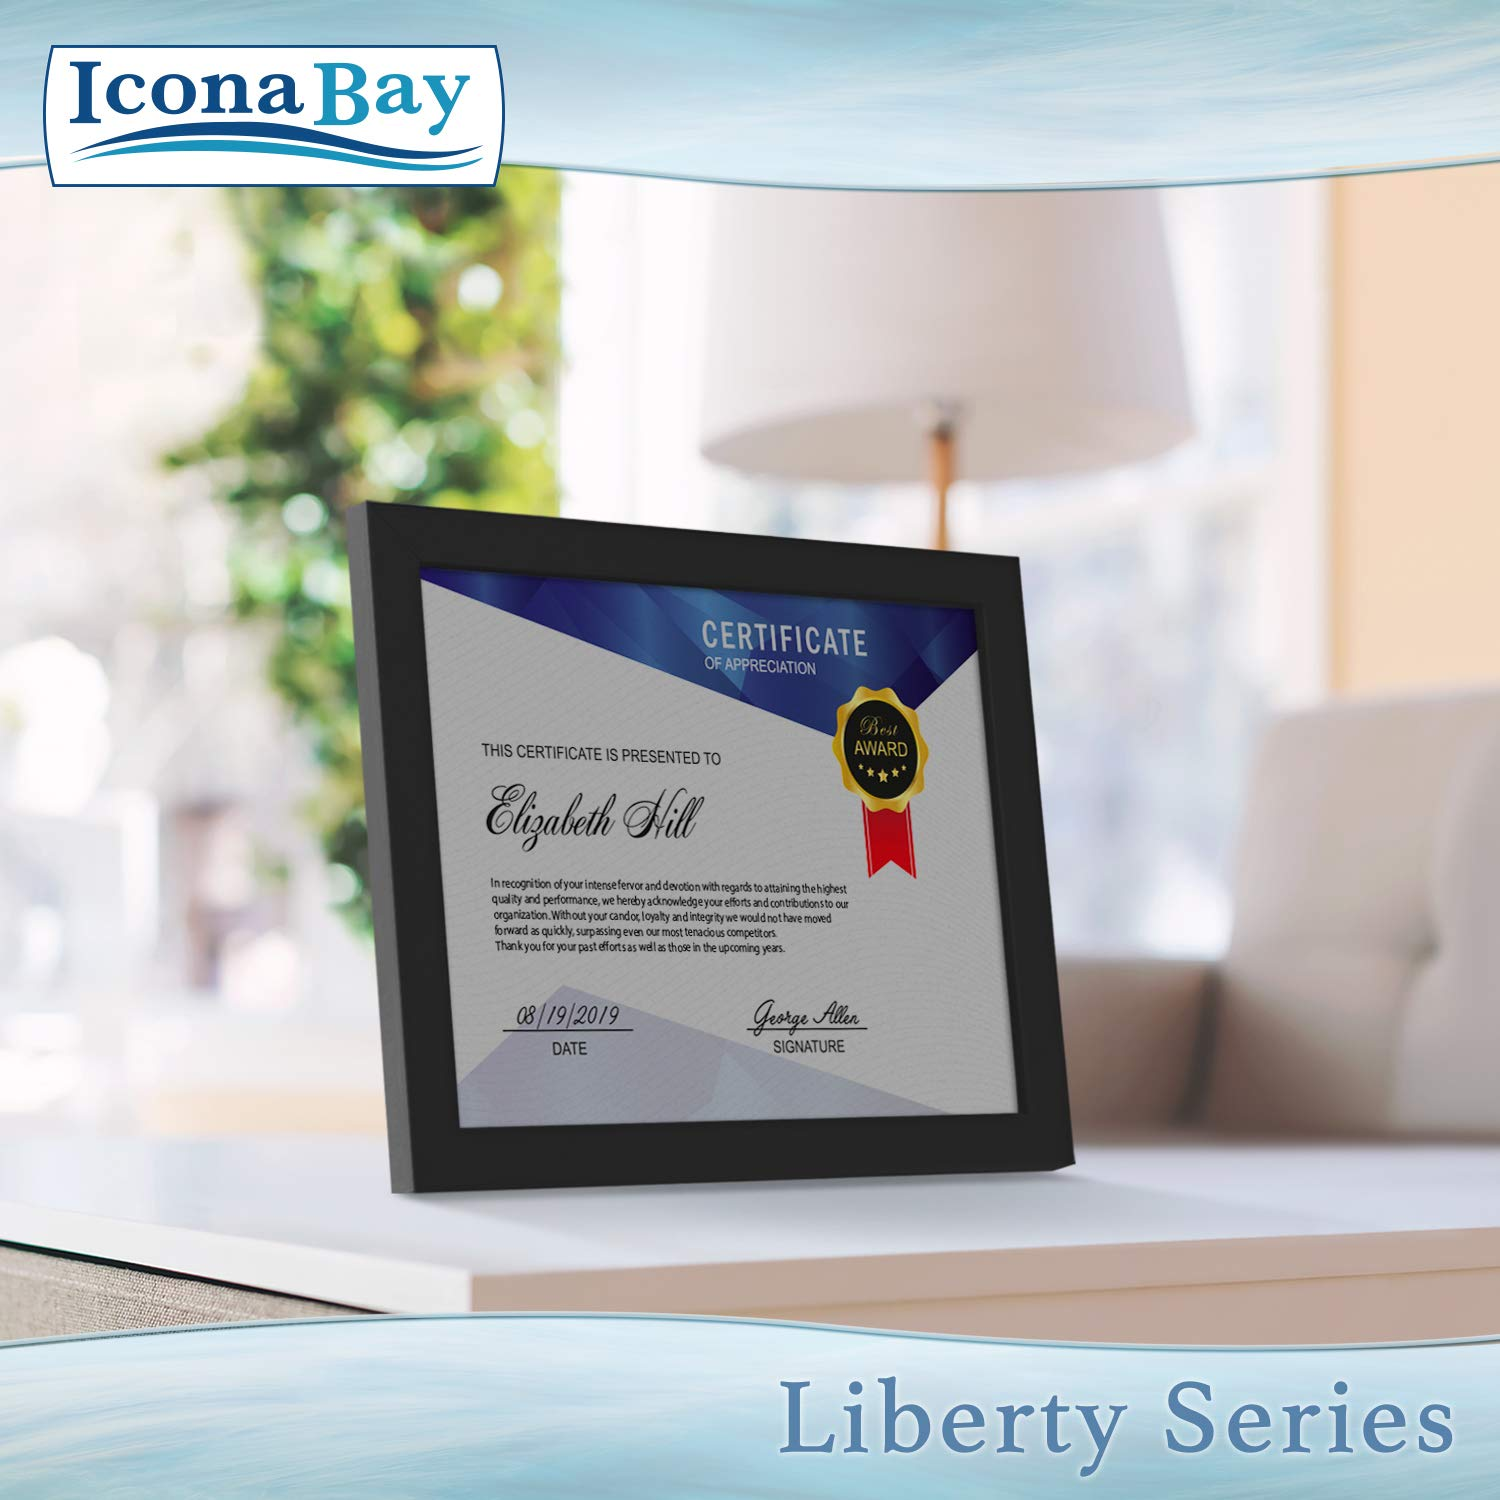 Icona Bay 8.5x11 Diploma Frame (12 Pack, Black), Black Sturdy Wood Composite Certificate Frame, Document Frame Bulk, Wall or Table Mount, Set of 12 Exclusives Collection by Icona Bay (Image #4)